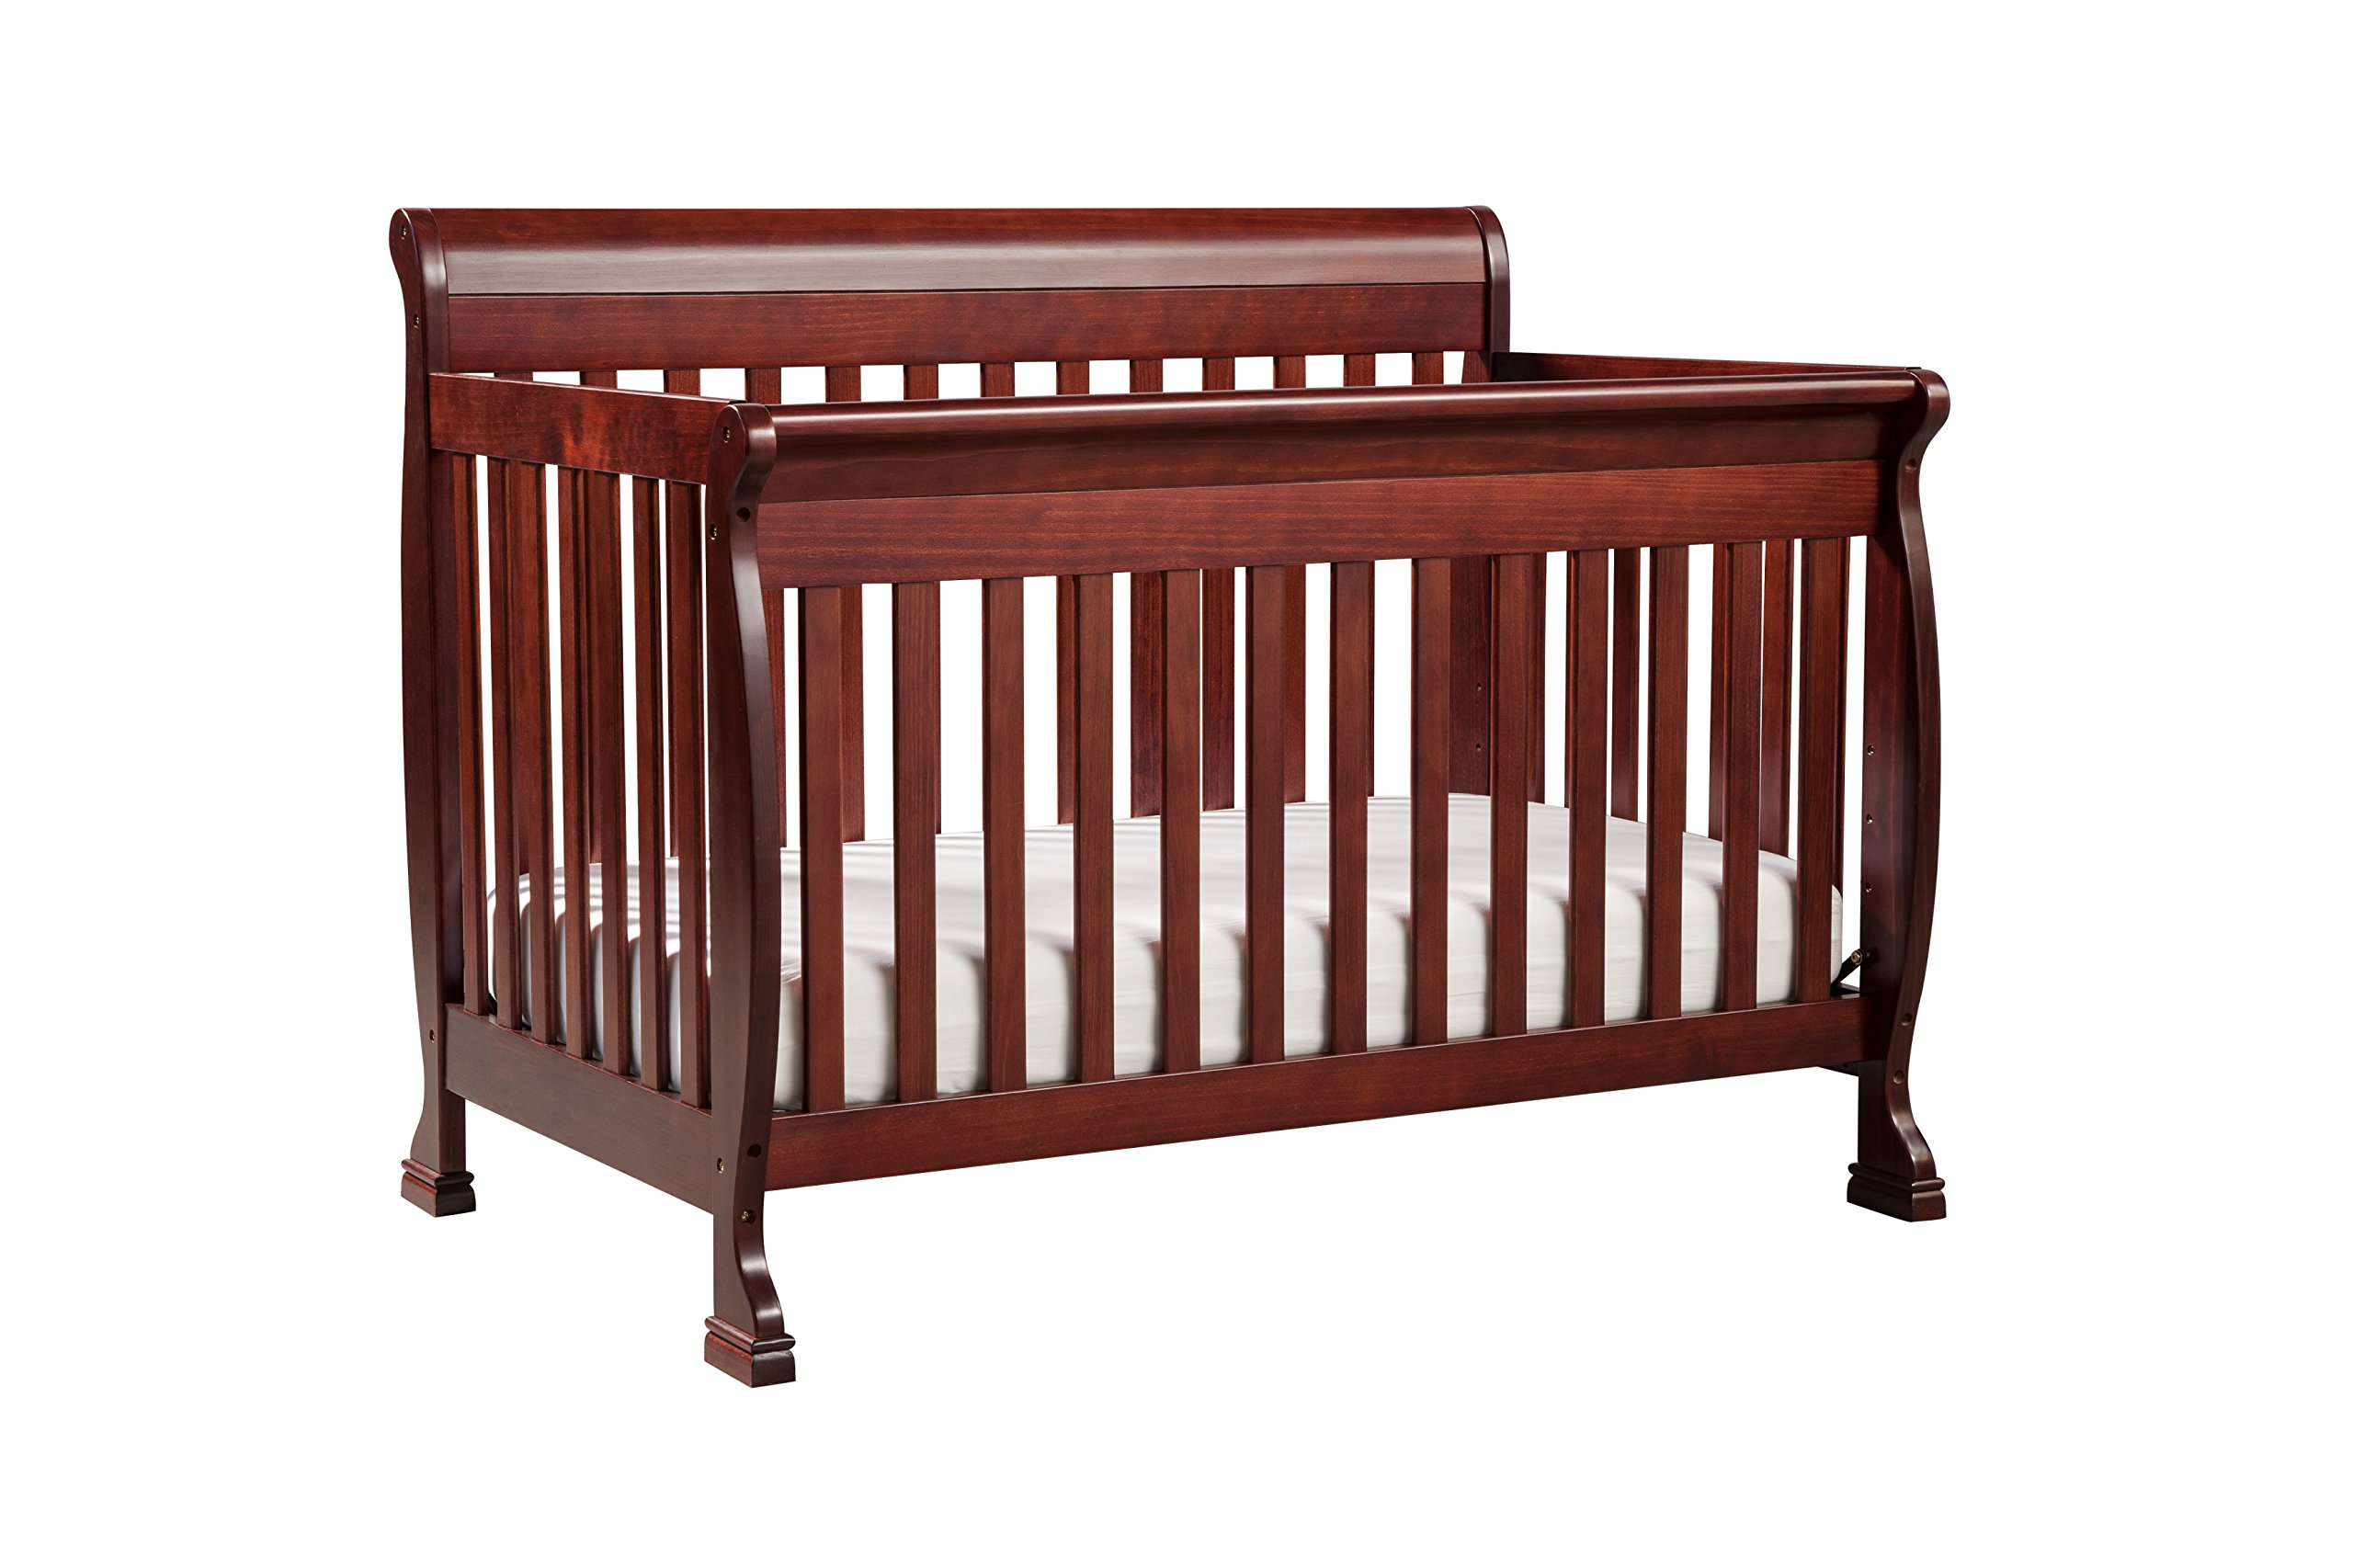 stylish attractive kids nursery full cradle of craftsman baby babybed toddler target with cribs bassinet tips infant natural and high blanket to amazing ideas quality babies wood design bedding drawer size furniture beautiful crib part choose fresh cherry cheap sheets